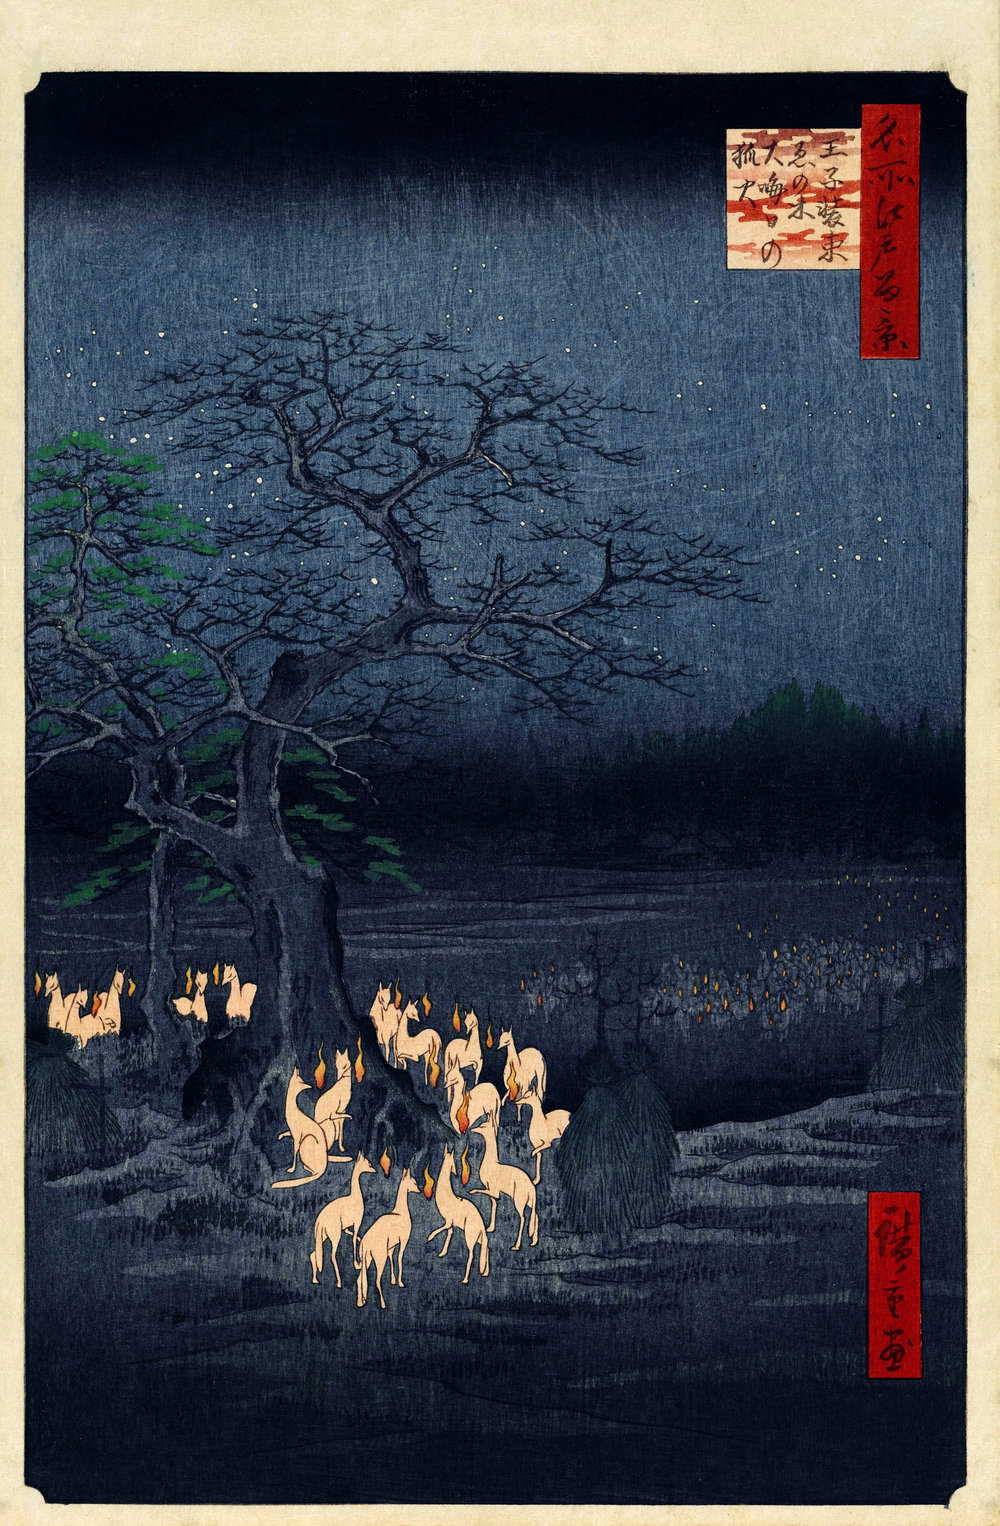 New Year's Eve Foxfires and the Changing Tree, Oji (1857) - HiroshigeThe wood grain in the dark ink adds such character. The foxes'  faces so evocative and individual; their heads have similar shape and color to the fire. Strong sense of magic and mystery, yet again, possibility and plausibility, like with the ghosts.